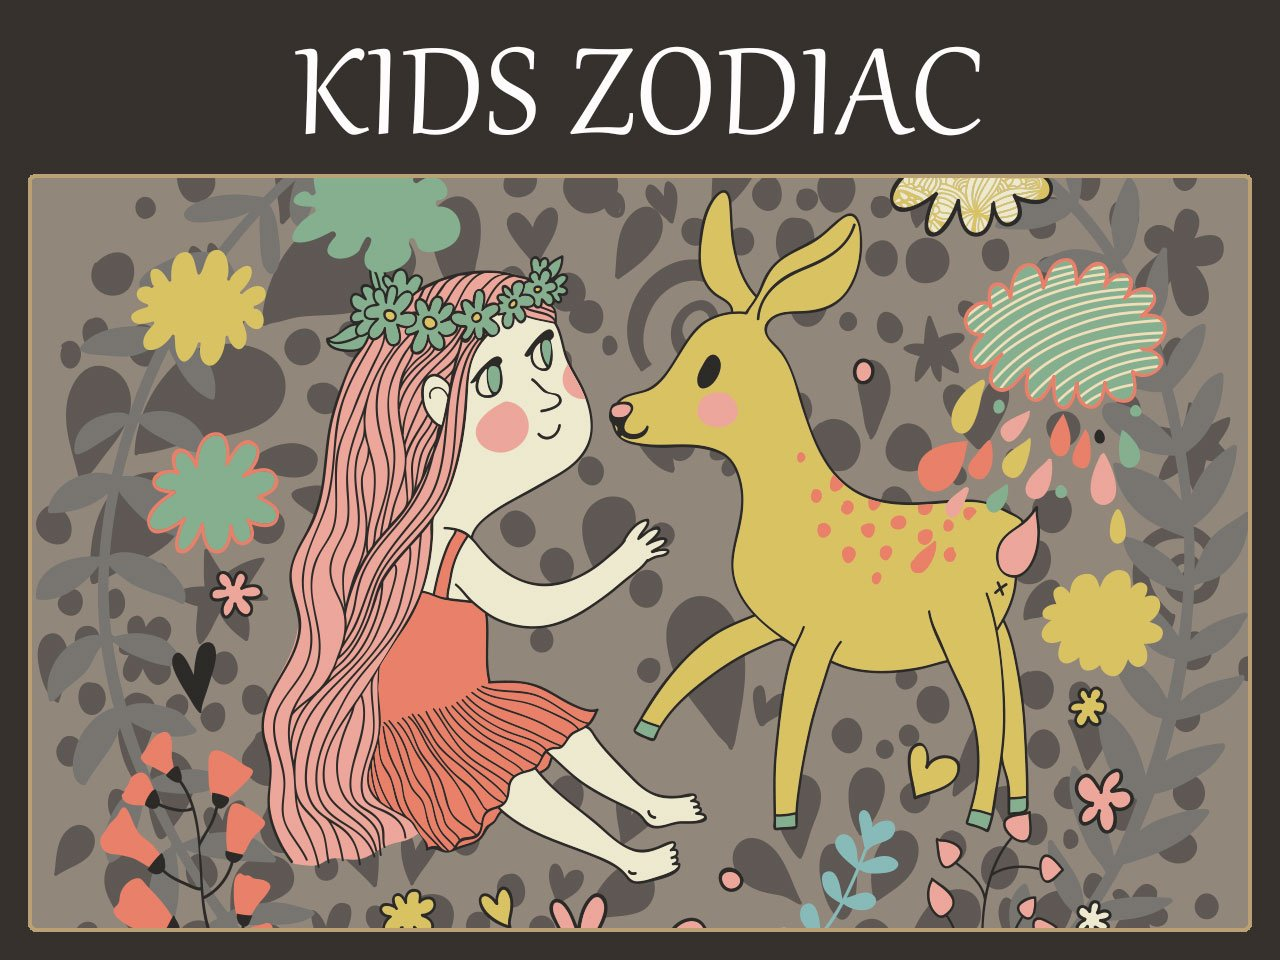 Astrology & Zodiac Signs for Kids | Zodiac Sign Traits